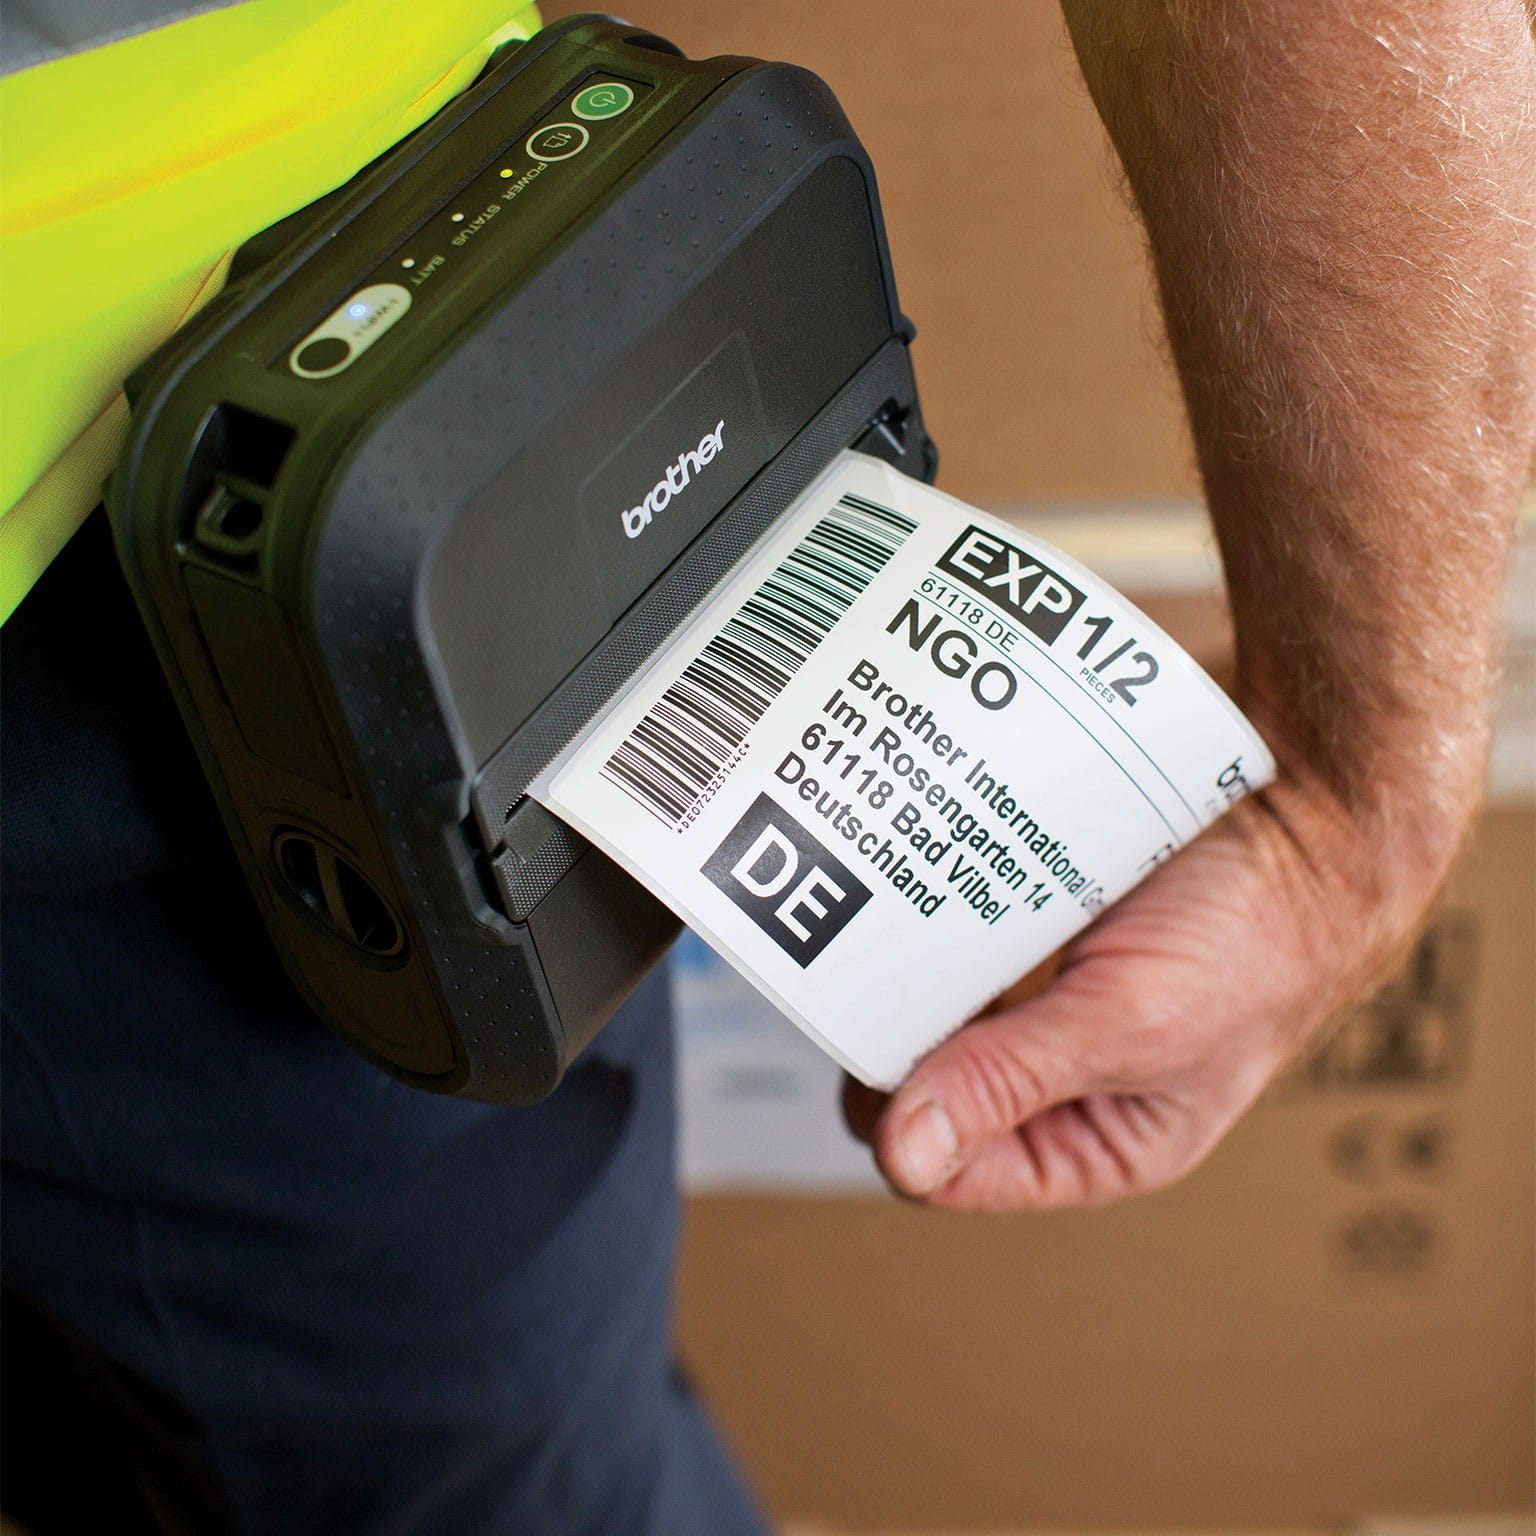 A Brother portable label printer being used by warehouse staff to print labels for packaging